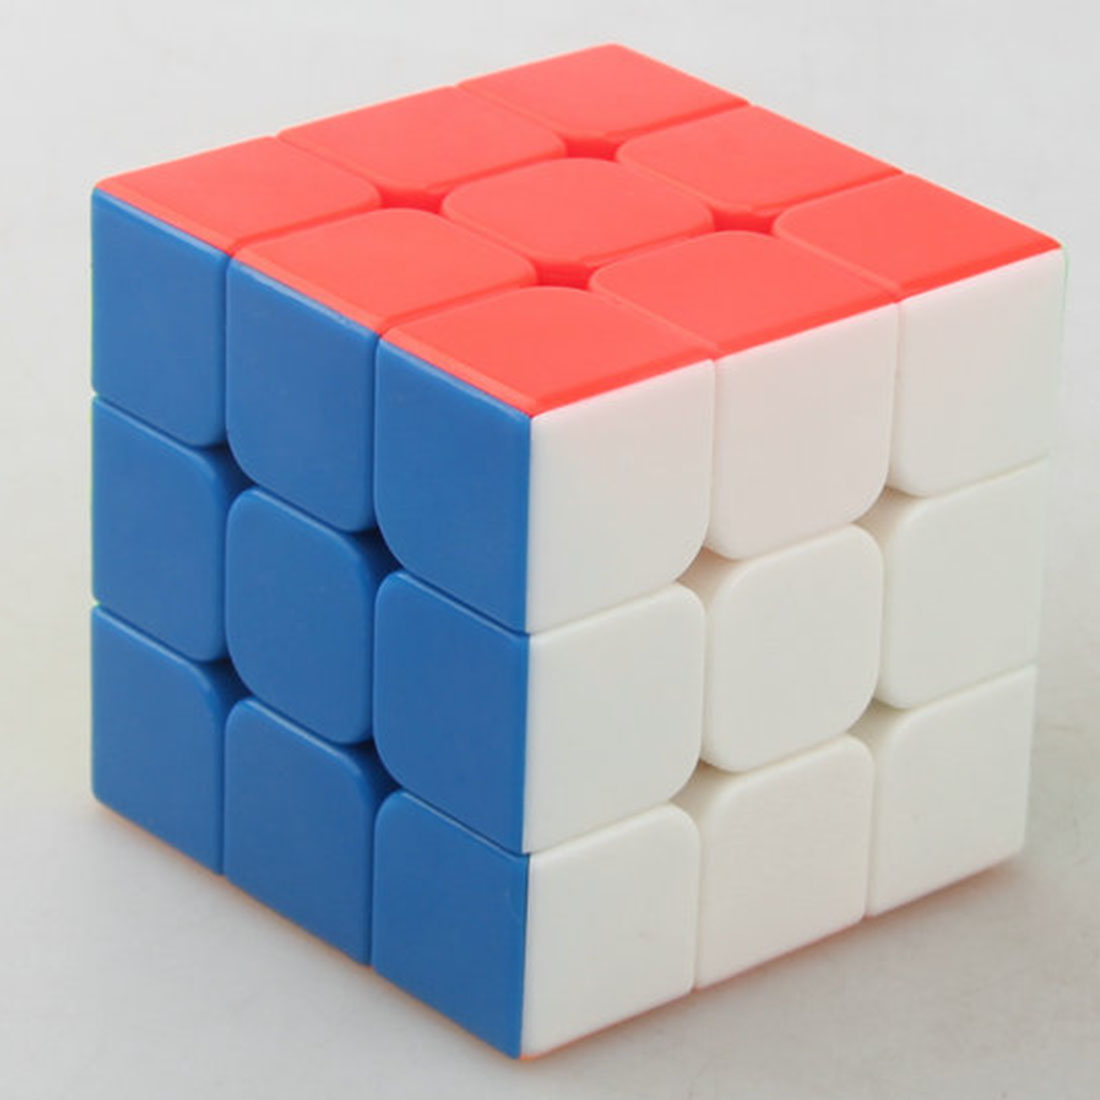 Surwish YJ RuiLong 3x3 Magic Cube Educational Toys For Brain Trainning - Colorful